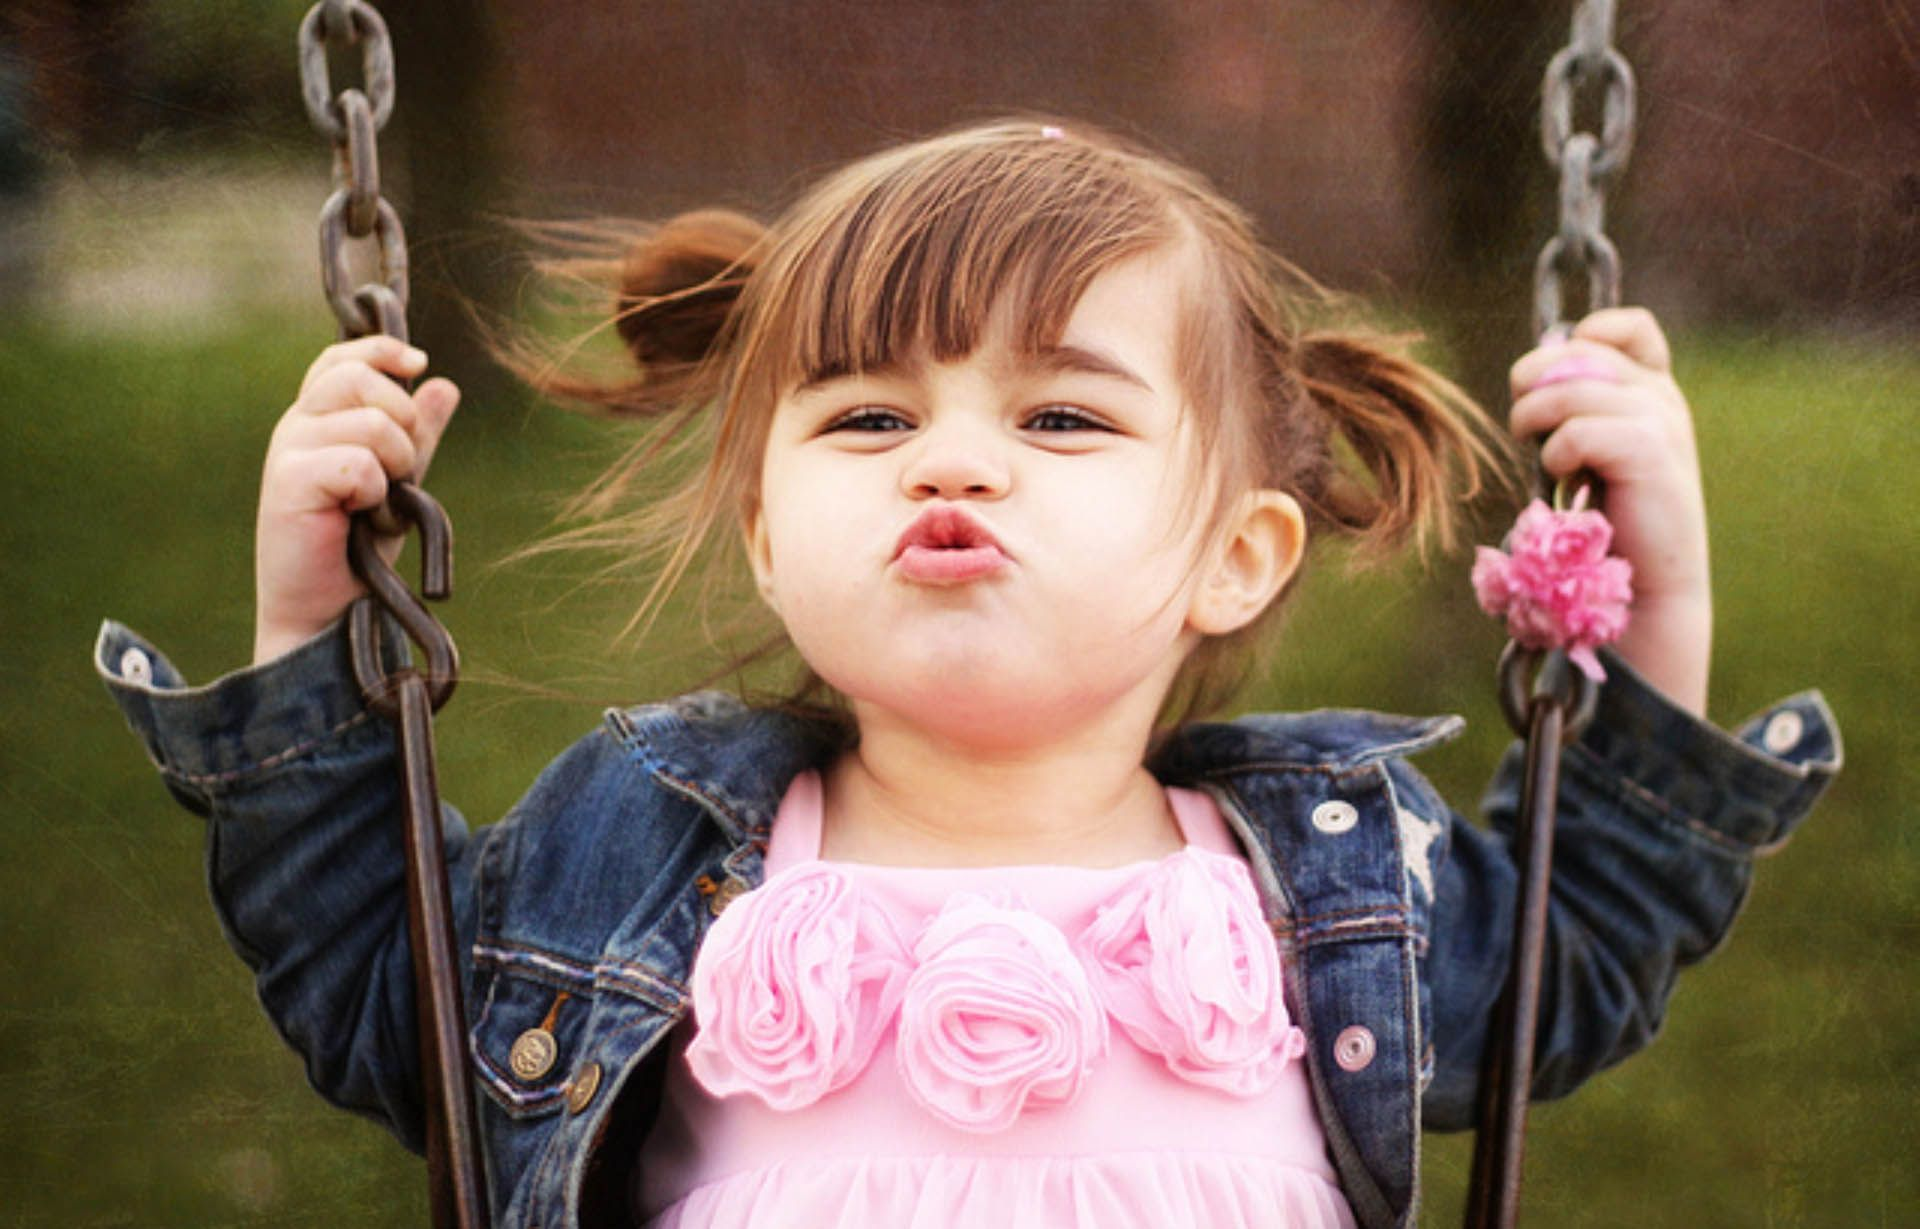 baby kiss wallpaper 1920×1080 baby kiss images wallpapers (30